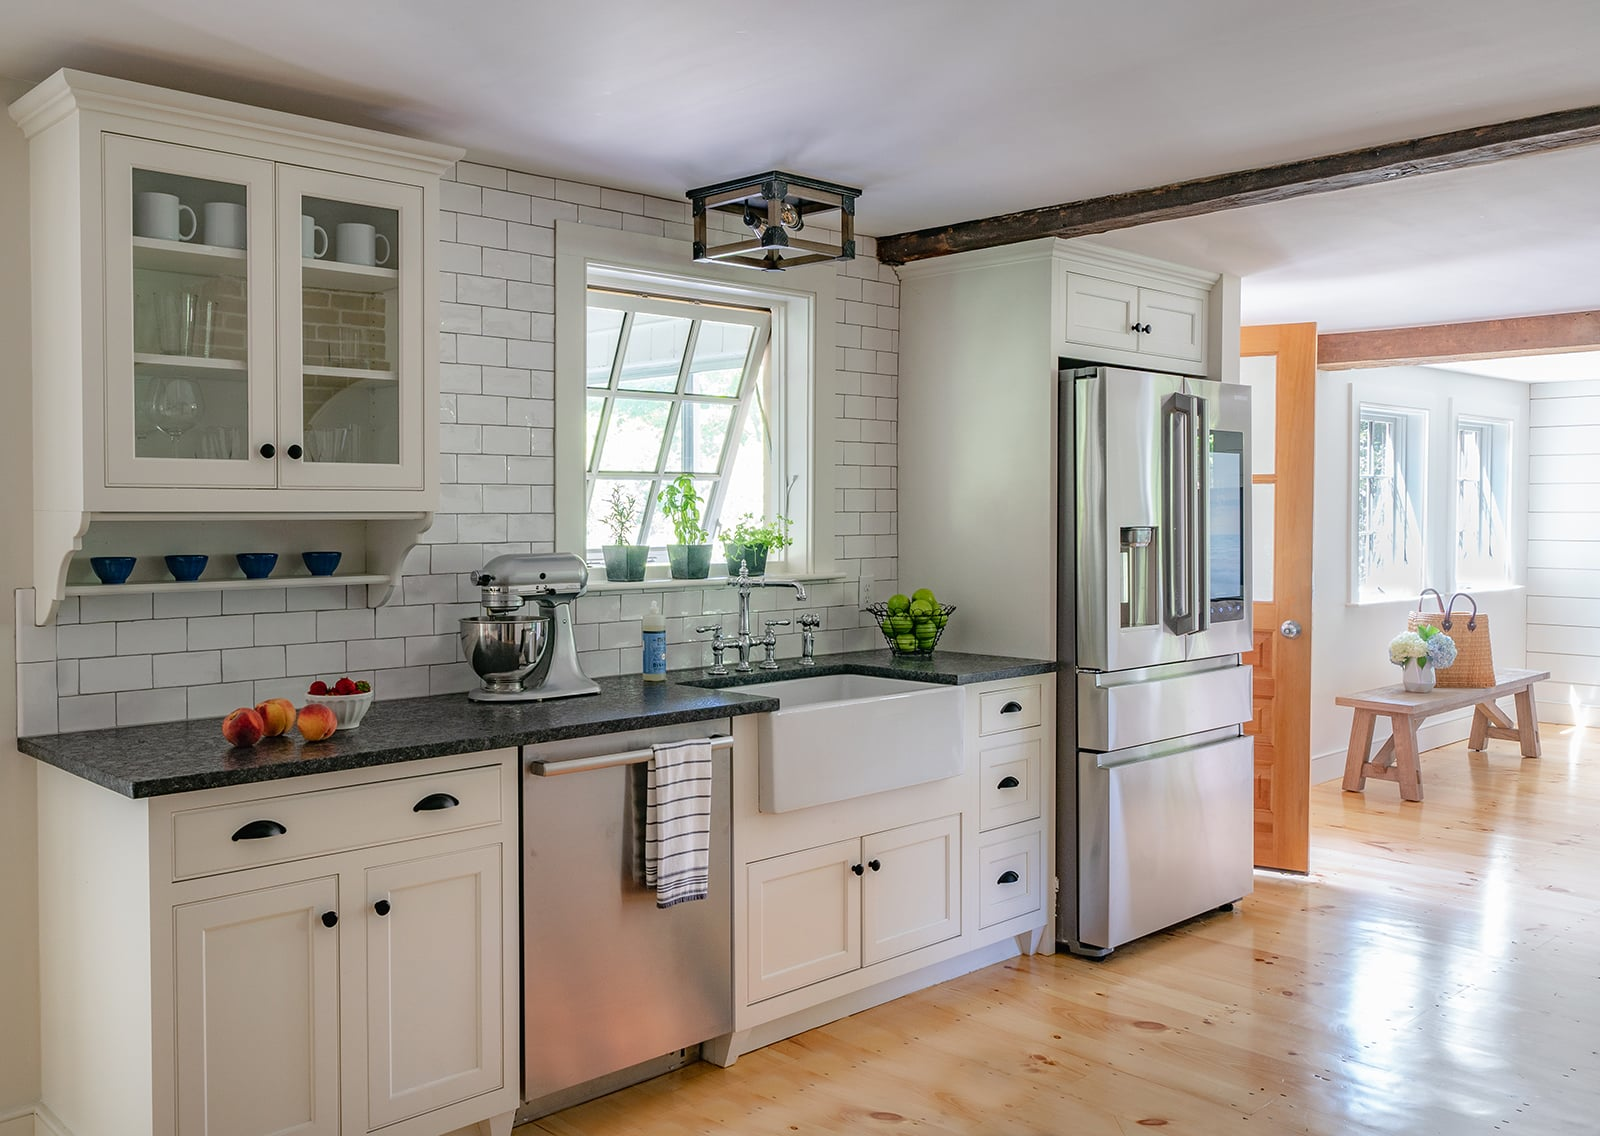 Hidden Farmhouse Wishing Well Historic Topsfield MA Kitchen